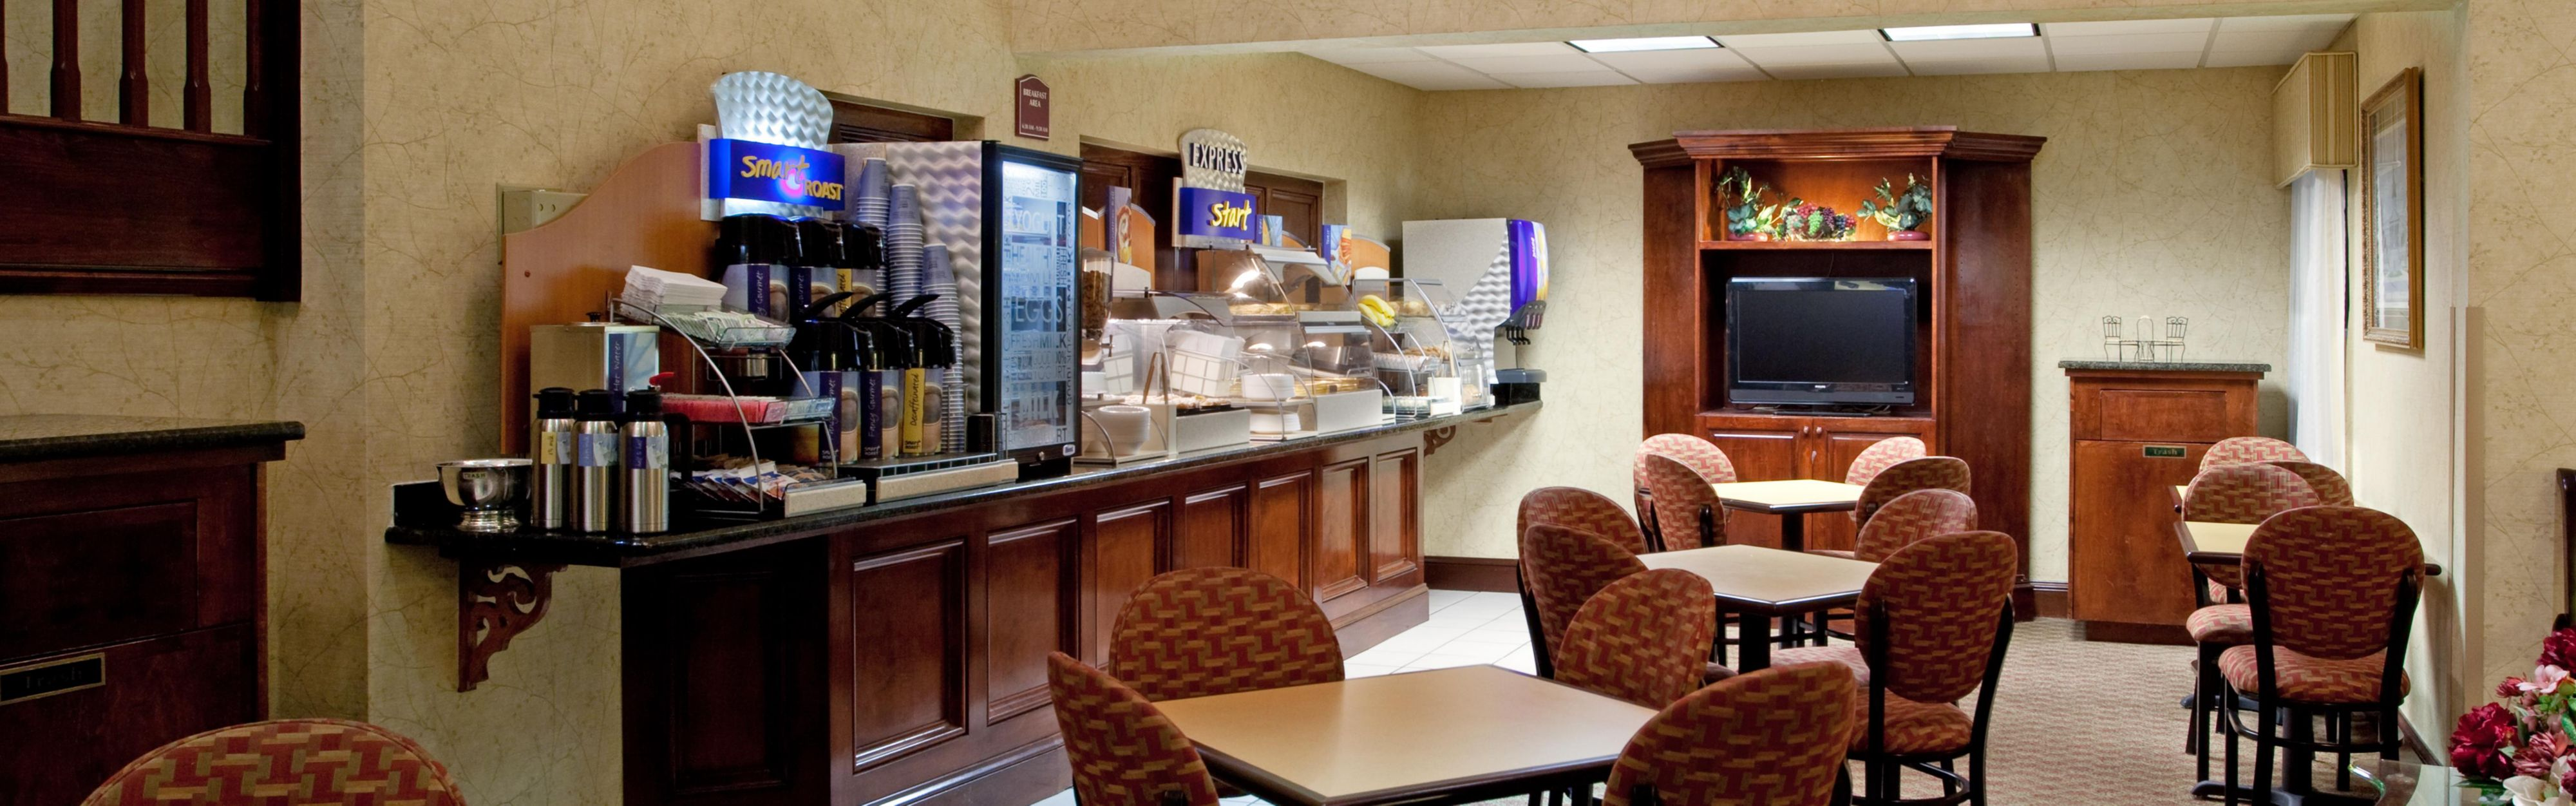 Holiday Inn Express & Suites Lexington-Hwy 378 image 3